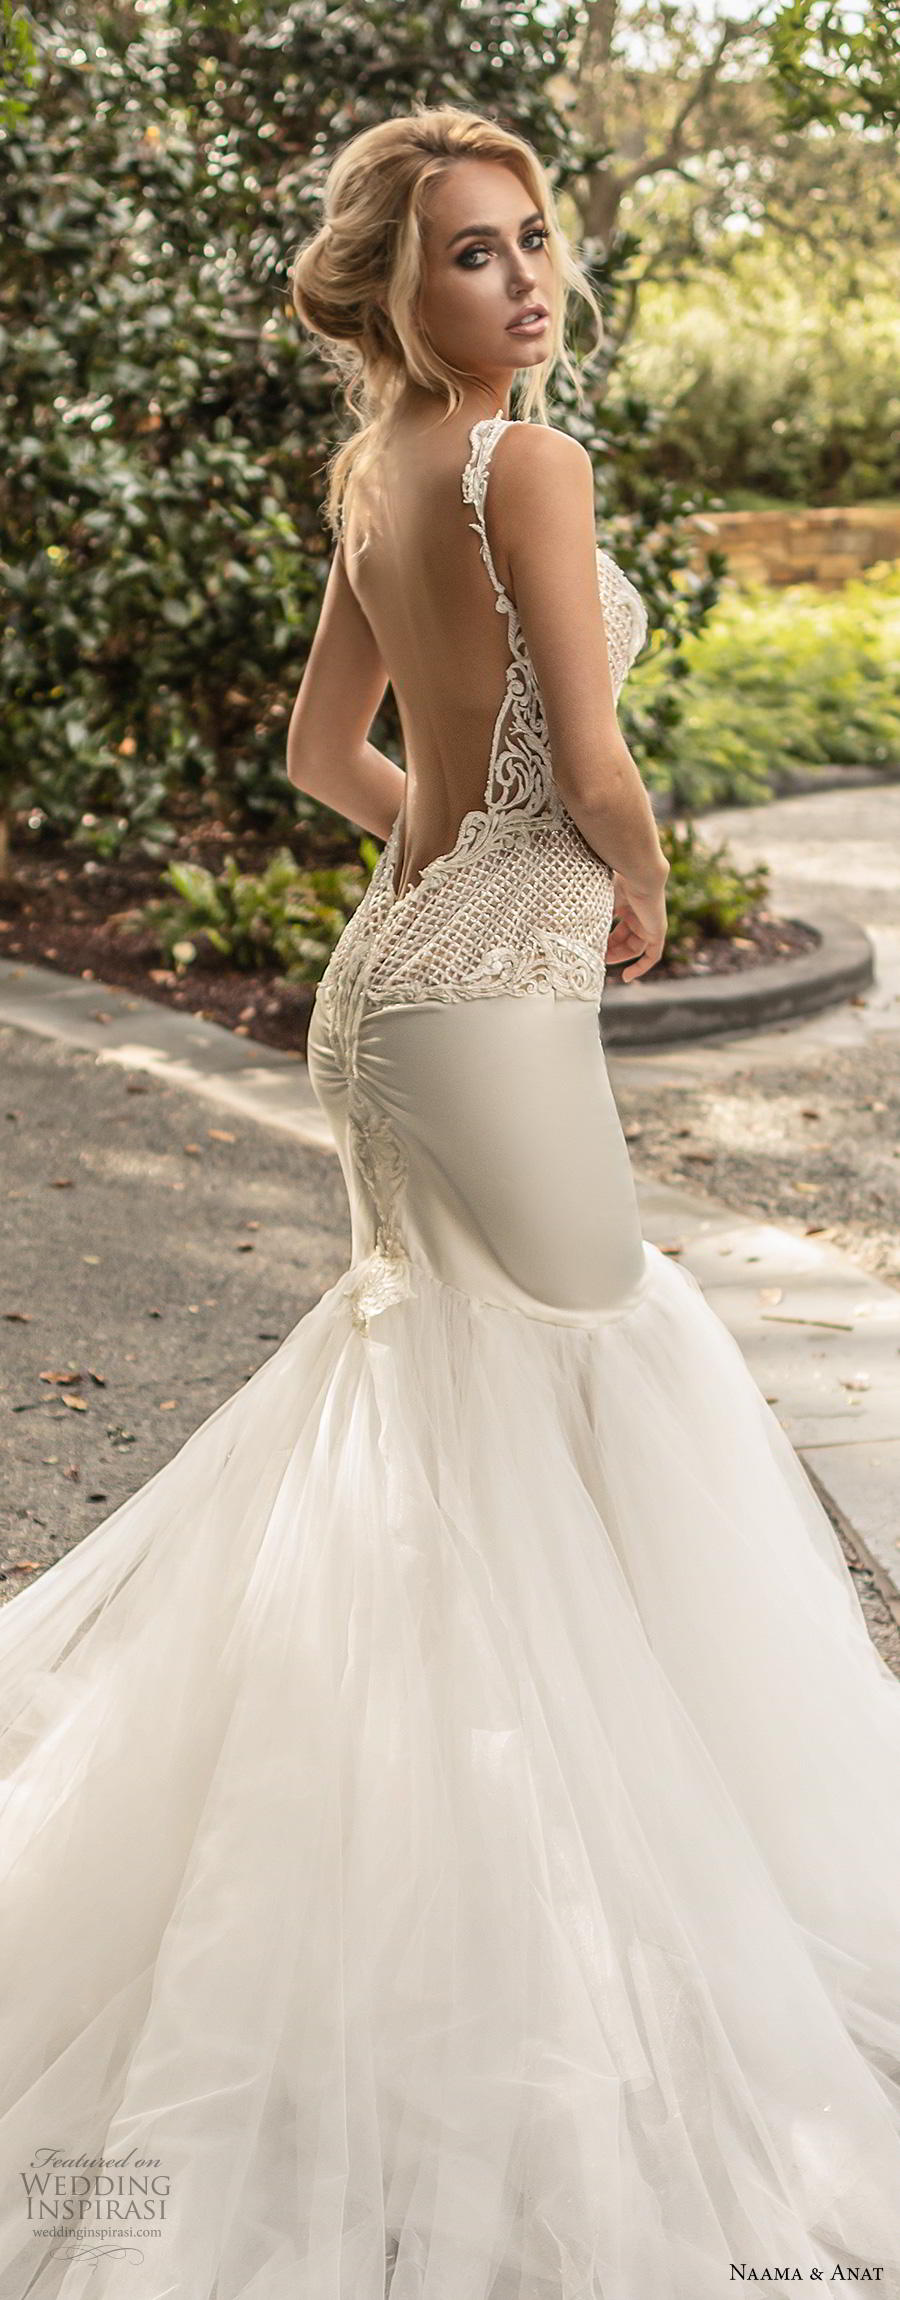 naama anat fall 2019 couture bridal sleeveless with strap sweetheart neckline heavily embellished bodice elegant mermaid wedding dress low open back backless royal train (3) lbv